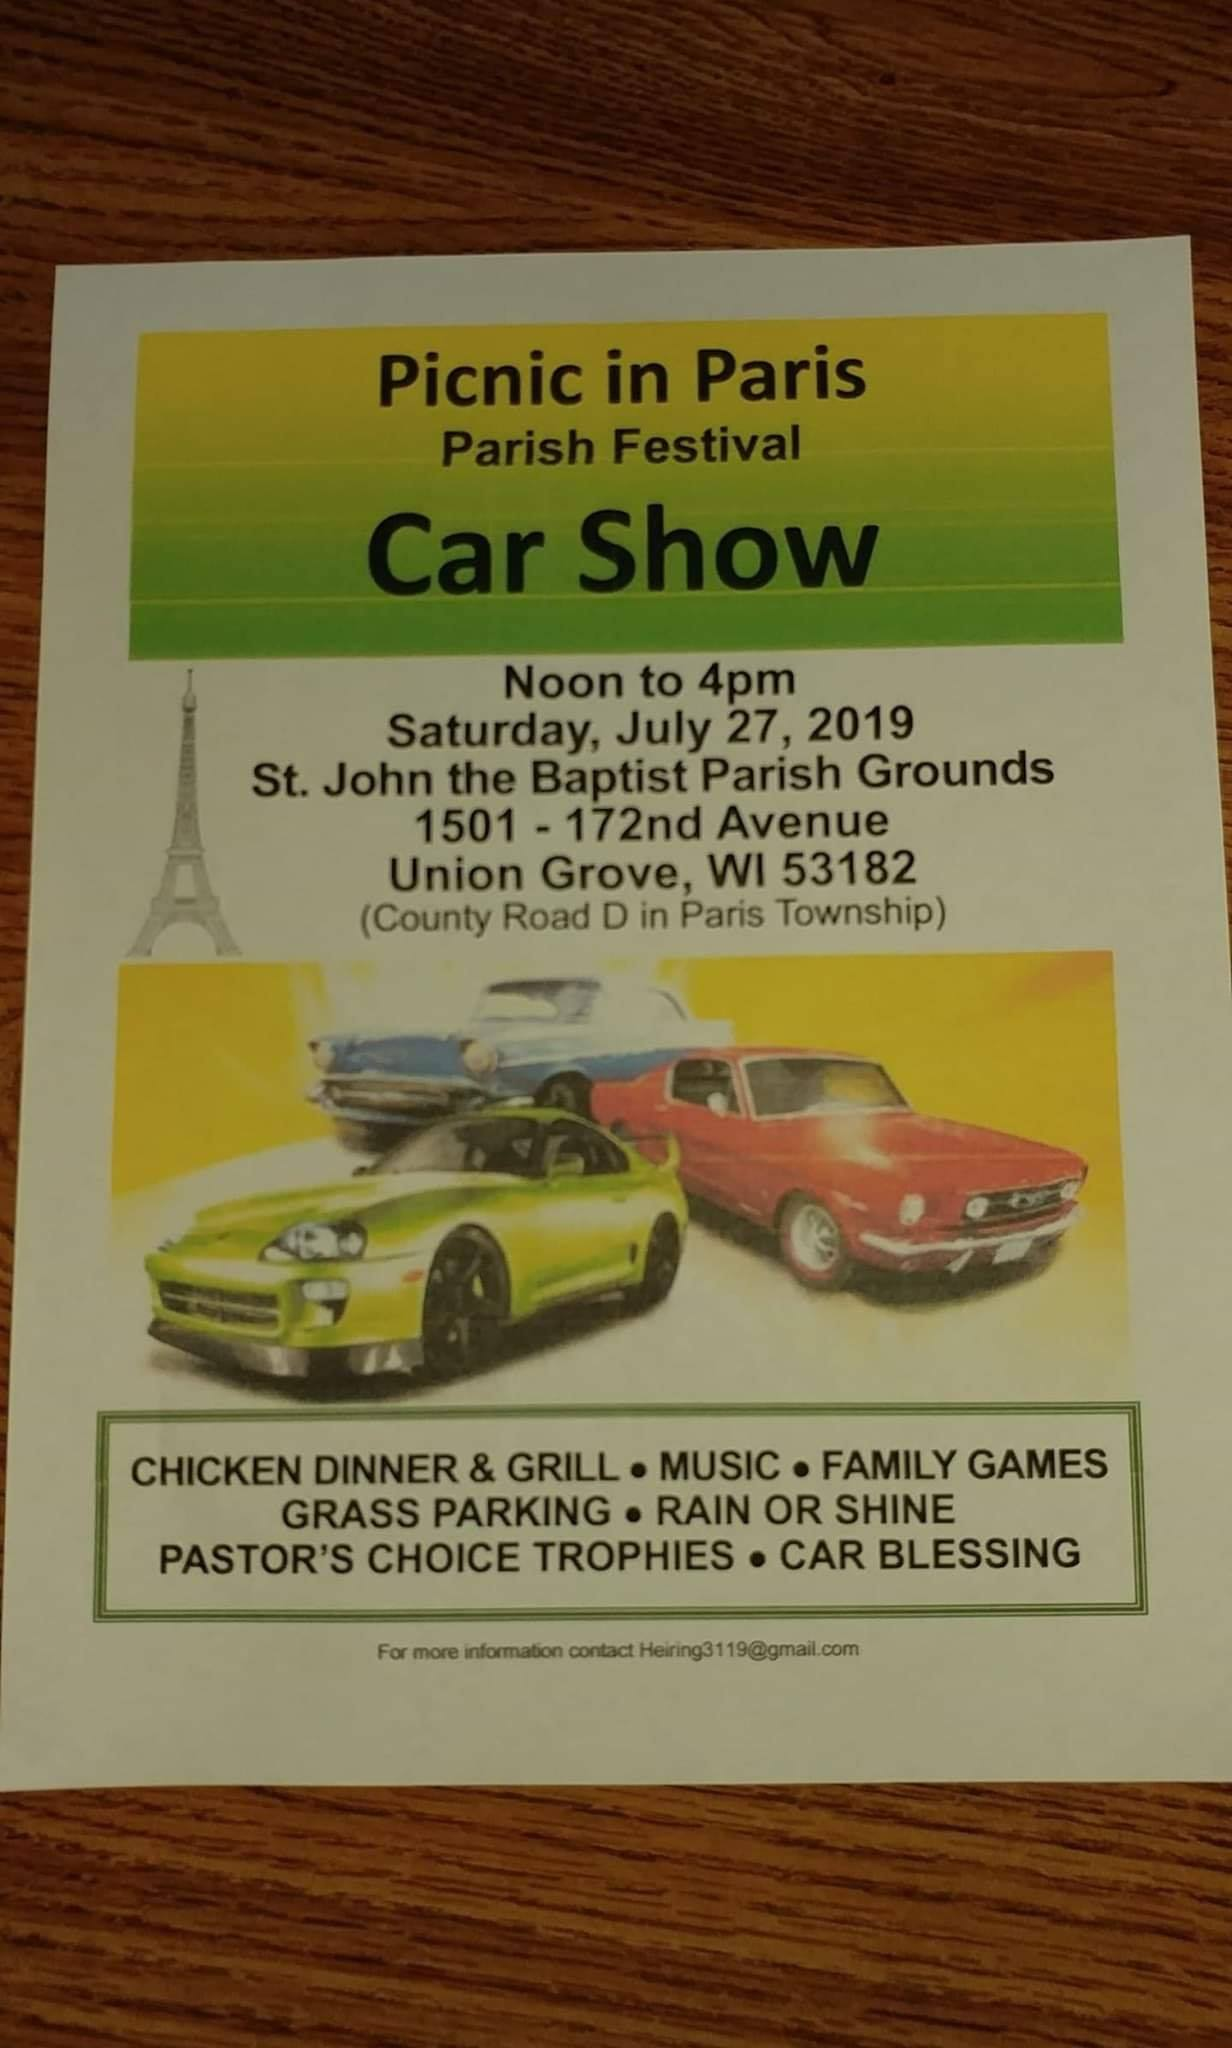 Picnic in Paris Car Show @ St. John the Baptist Parish Grounds